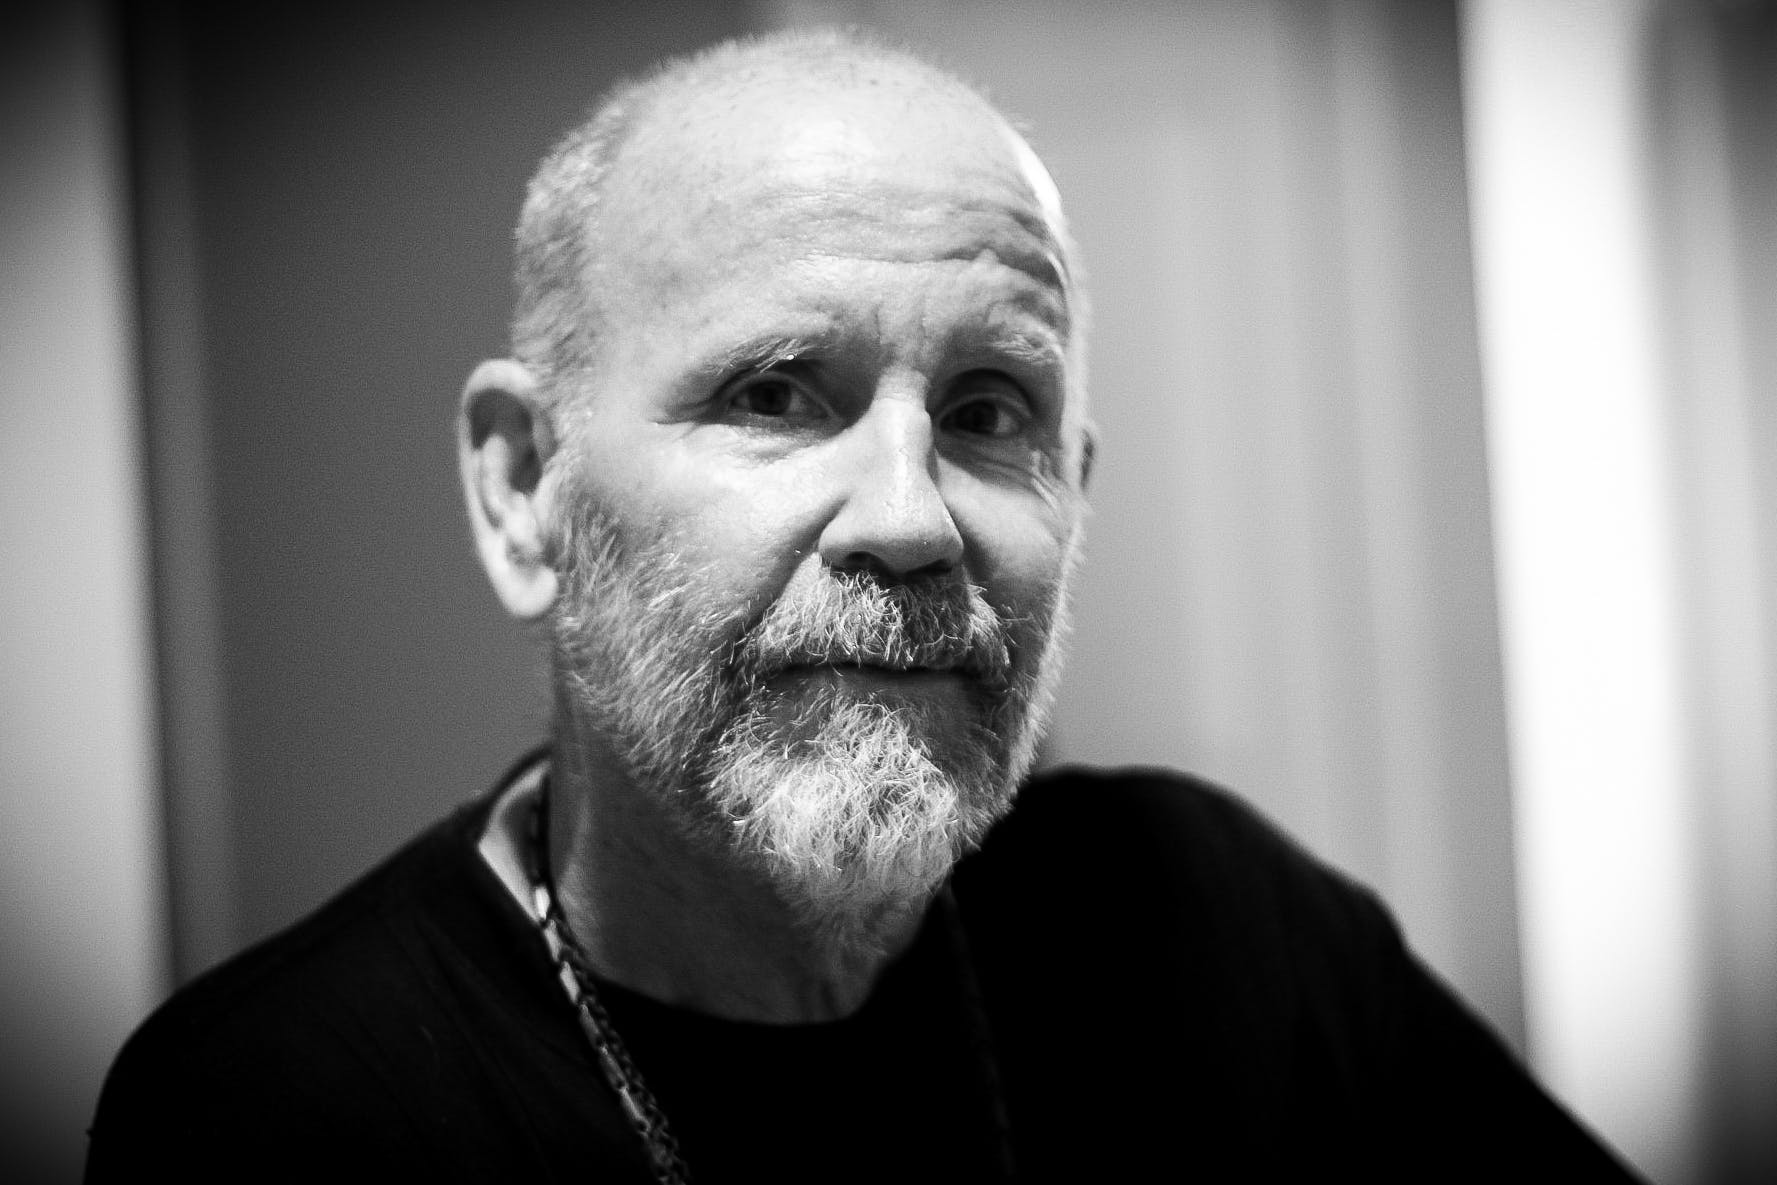 Free stock photo of bald, black and white, contrast, full beard